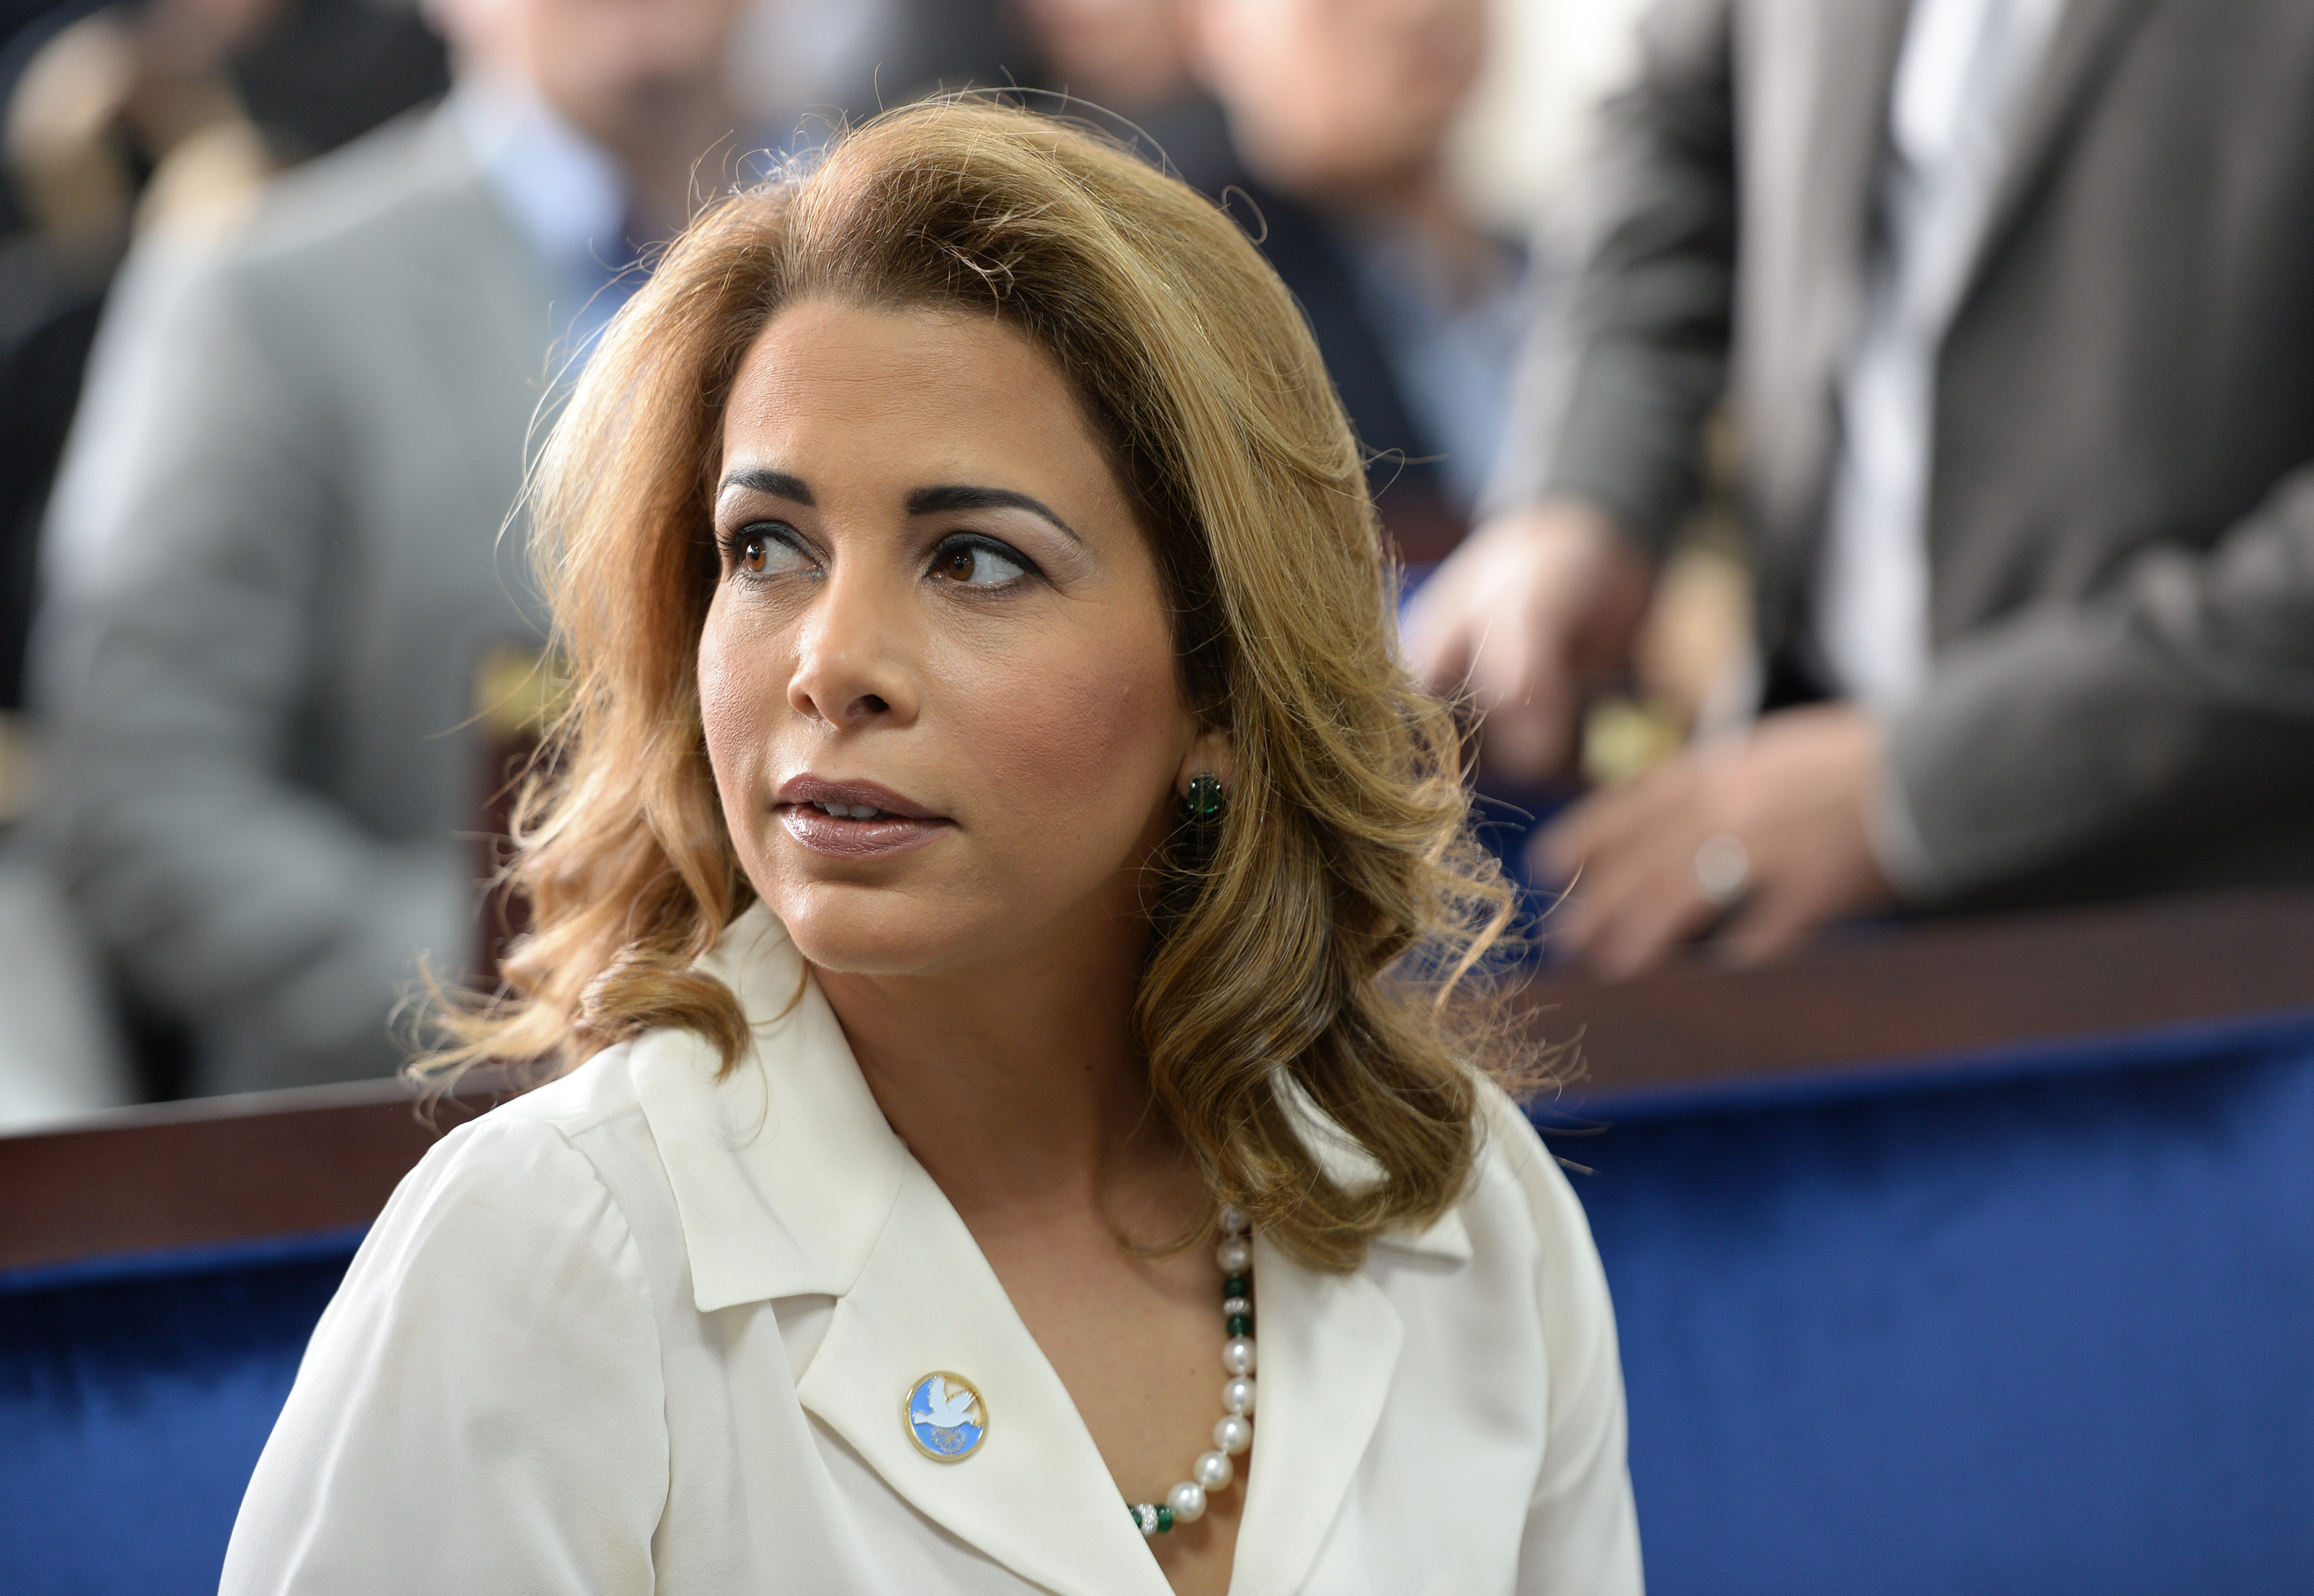 Princess Haya bint al-Hussein, the wife of the Prime Minister of the UAE and Ruler of Dubai, waits for United Nations Secretary-General Ban Ki-moon to arrive for a press conference ahead of the launch of the UN's report on humanitarian financing in Dubai, United Arab Emirates, Sunday, Jan 17, 2016. (AP Photo/Martin Dokoupil)